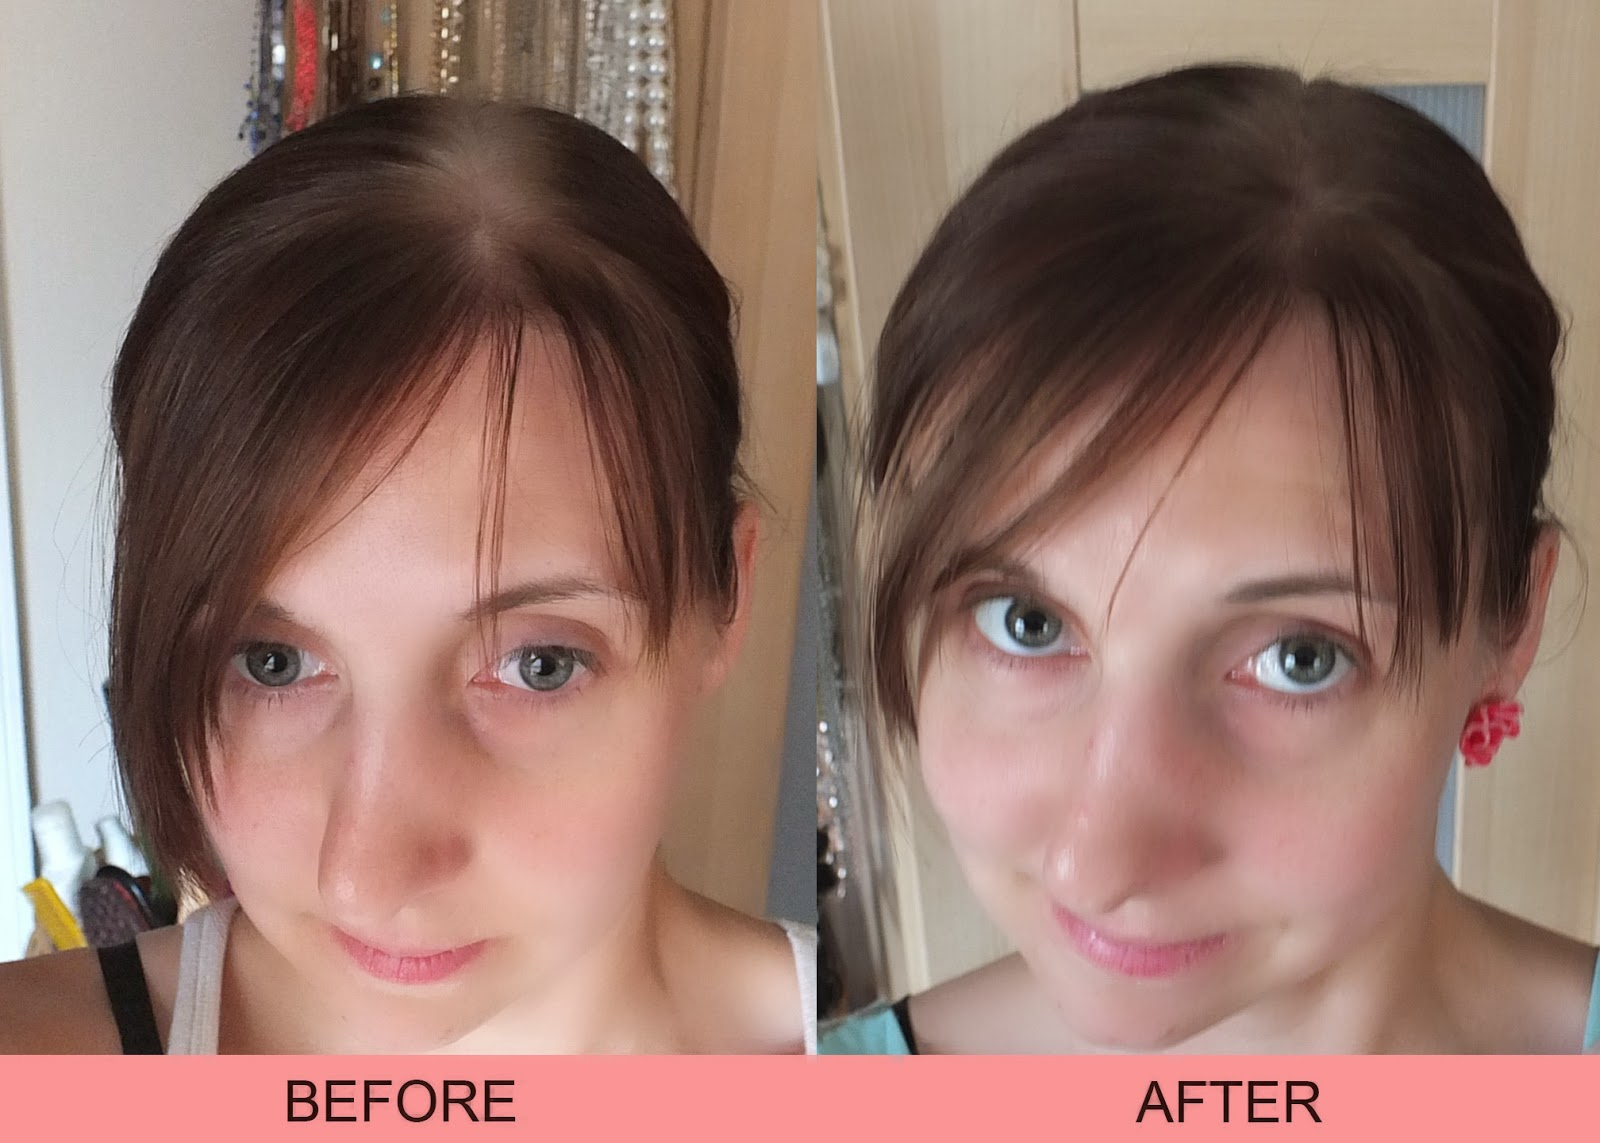 Headshot of Before and after using chalk to cover up roots